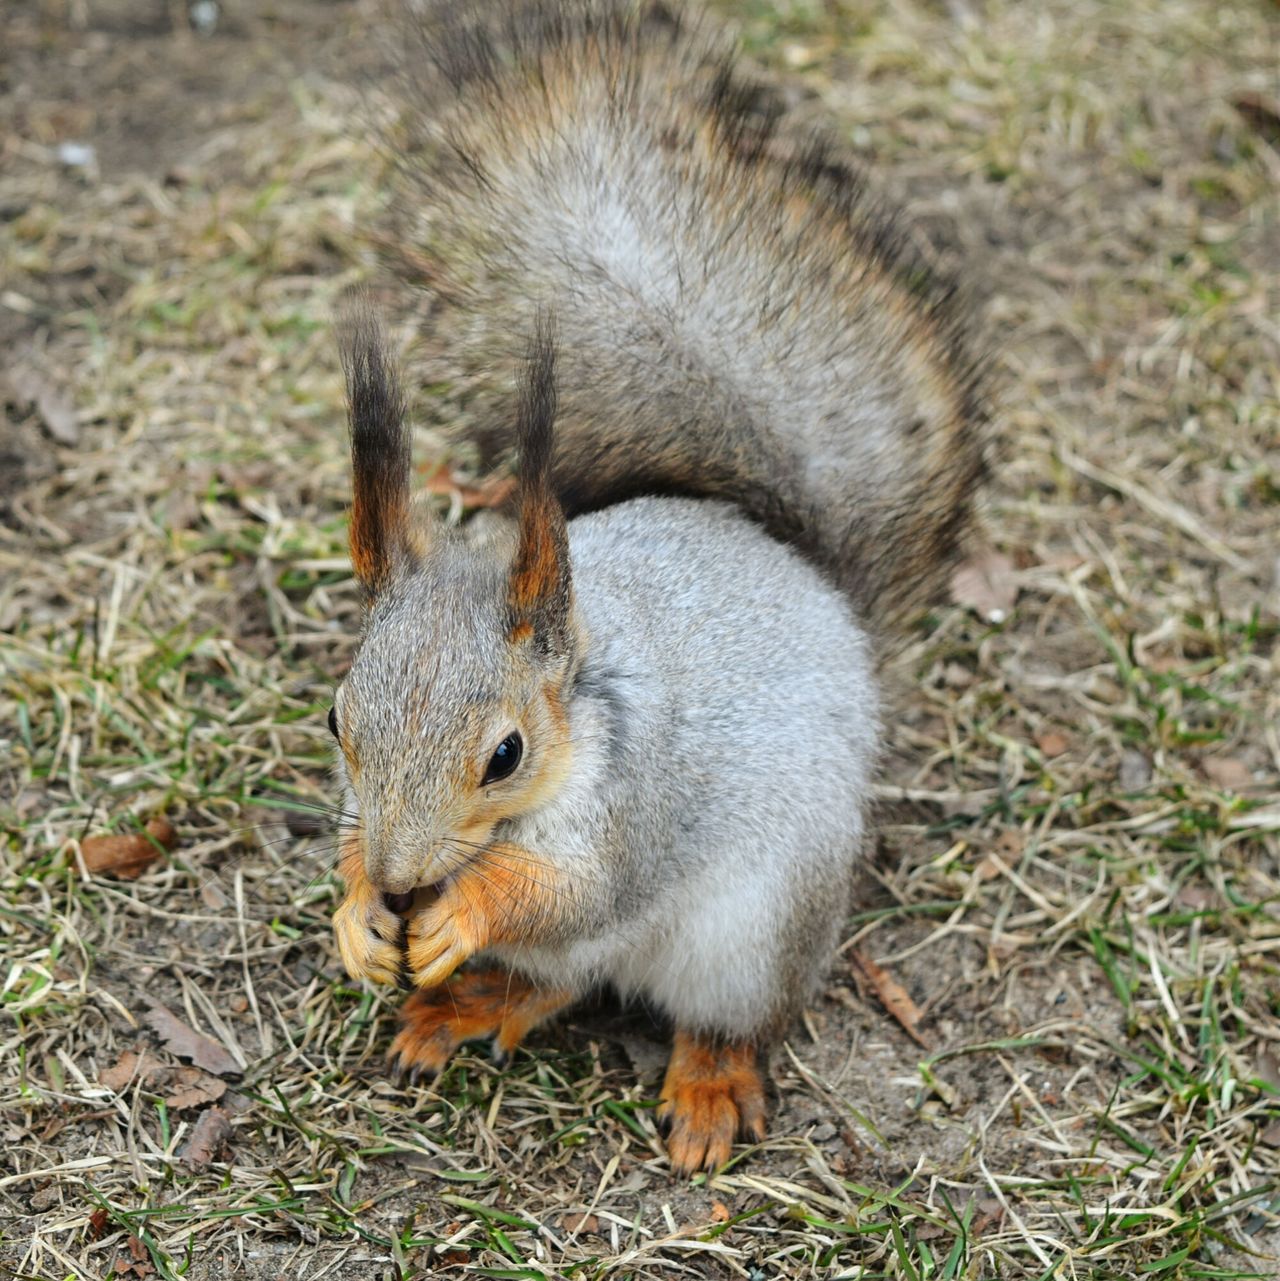 Taking Photos Beauty In Nature Elagin Island Park Squirrel Eating Enjoying Life Nature Photography Photography Spring